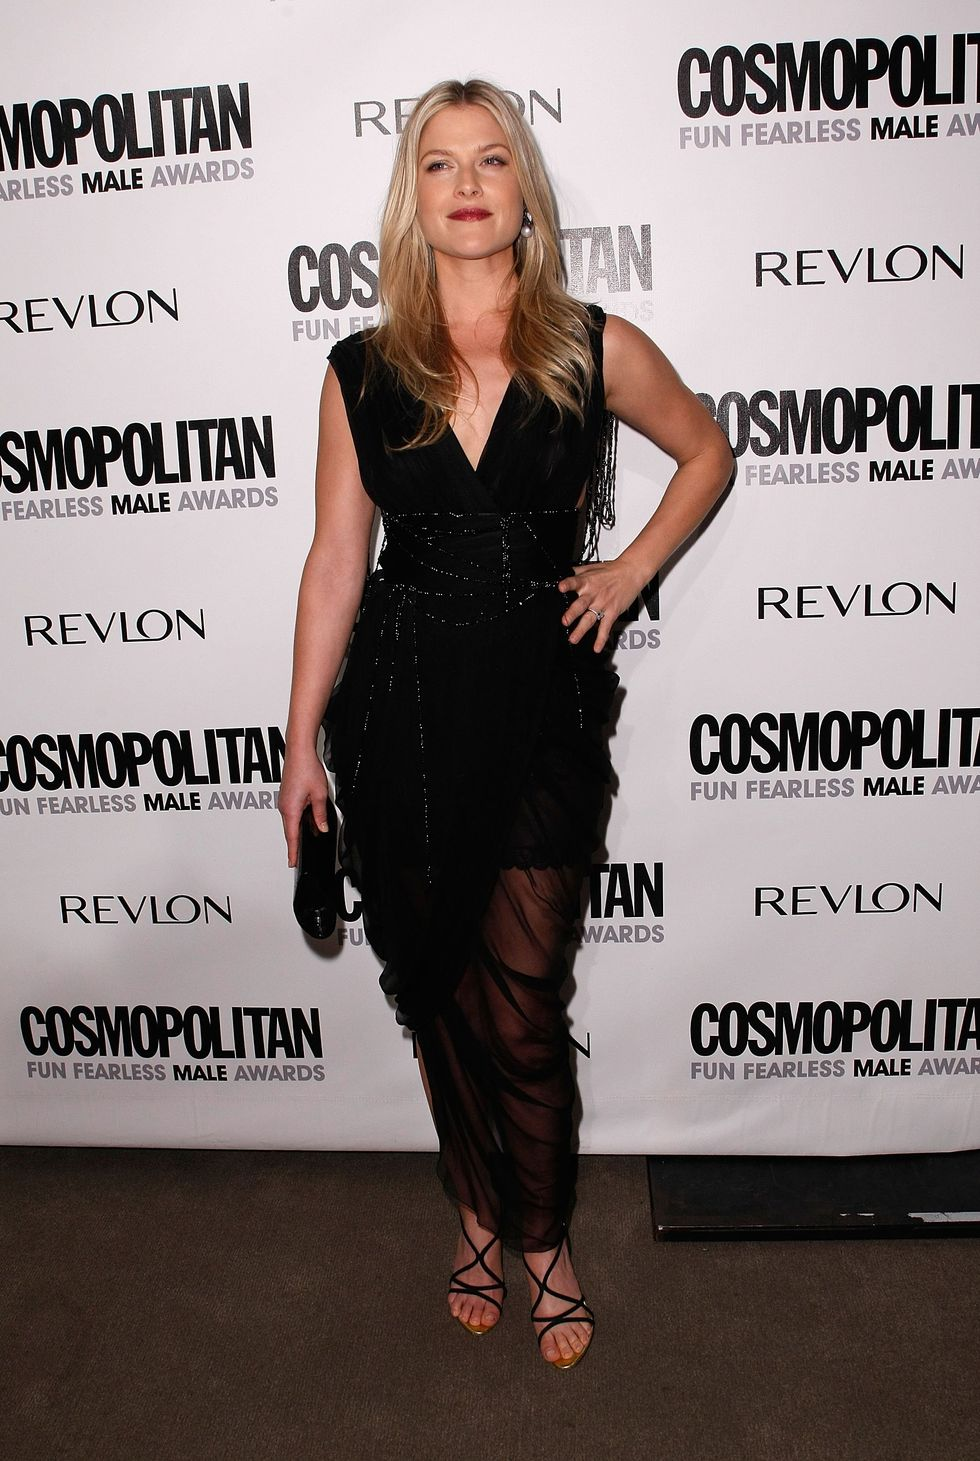 ali-larter-cosmopolitan-honors-its-fun-fearless-males-of-2009-in-beverly-hills-01